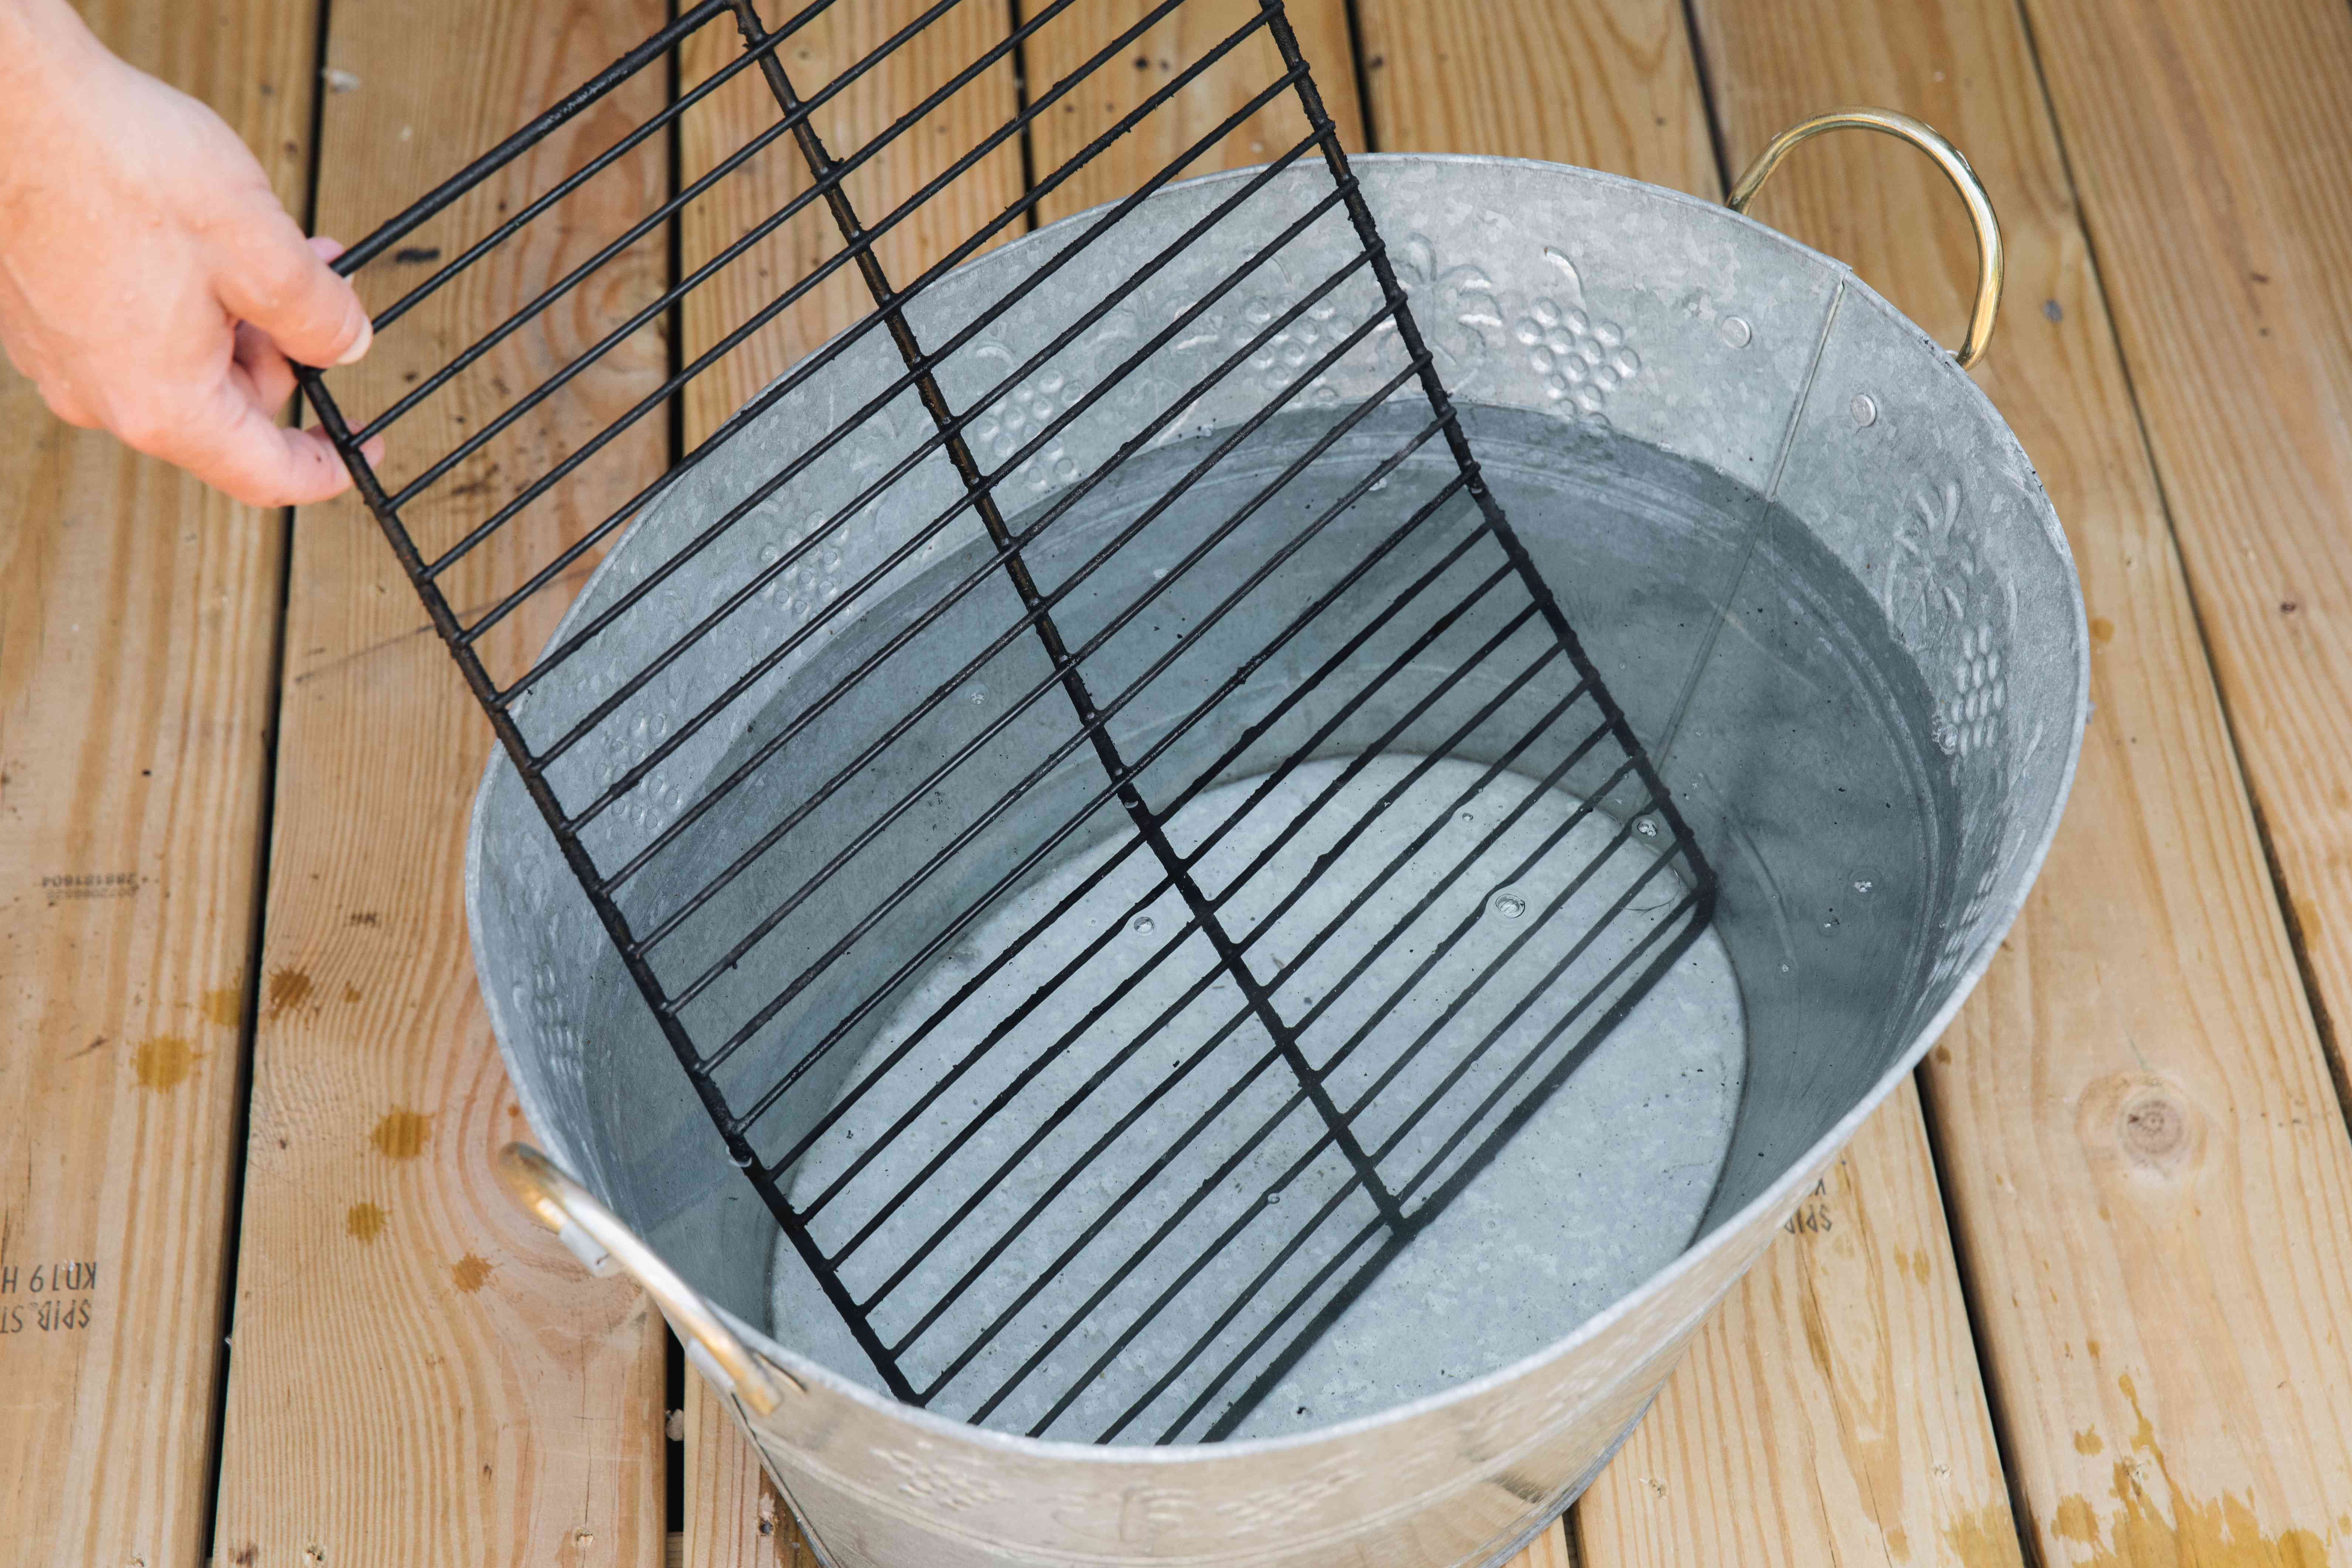 soaking grates in a basin with vinegar